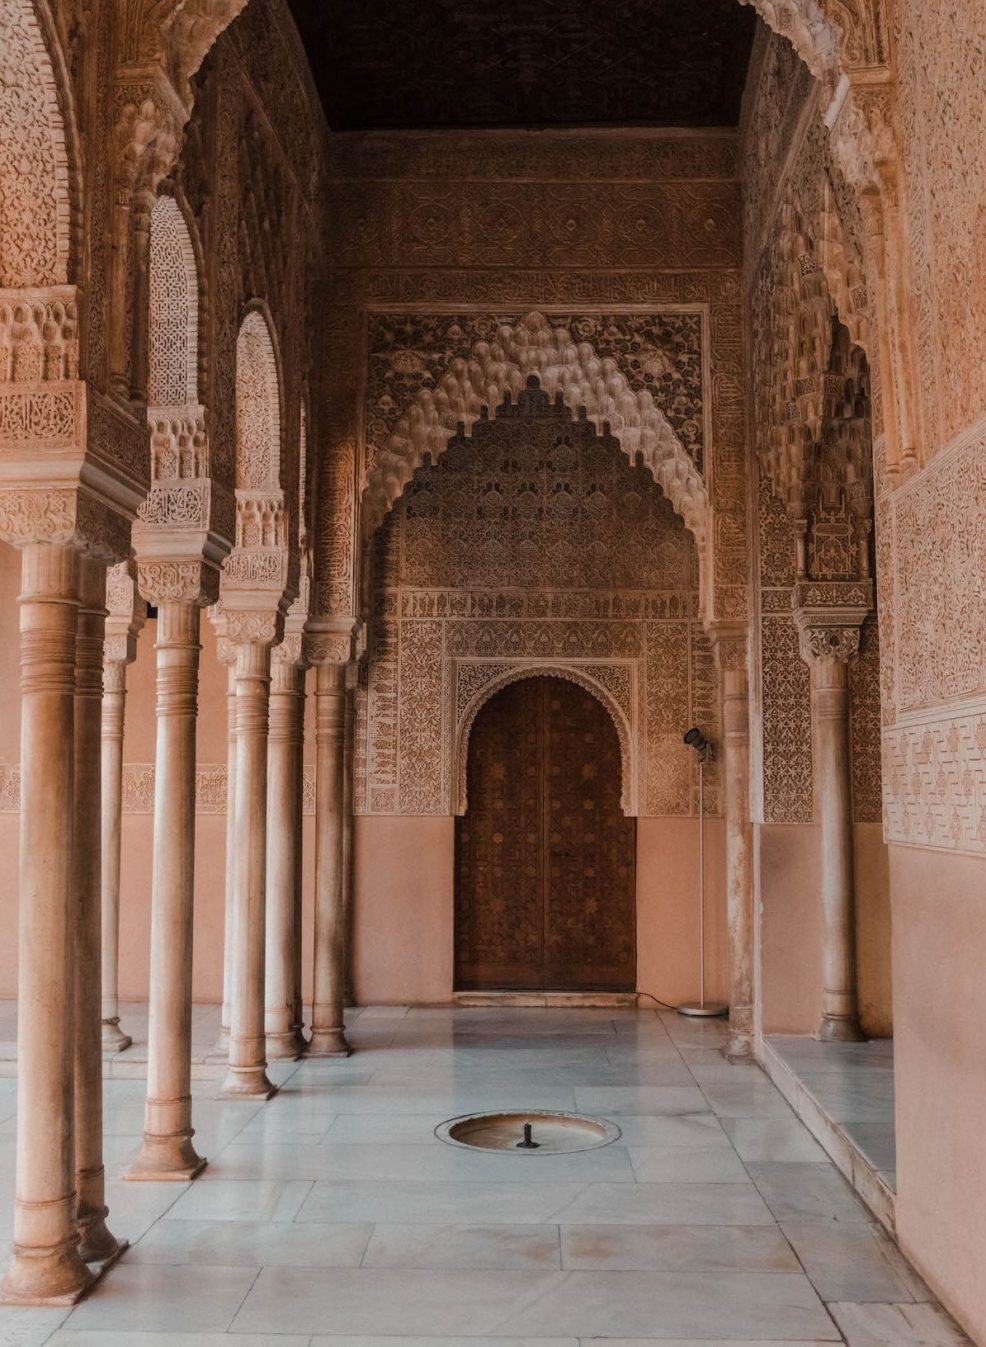 Details at the Alhambra in Granada